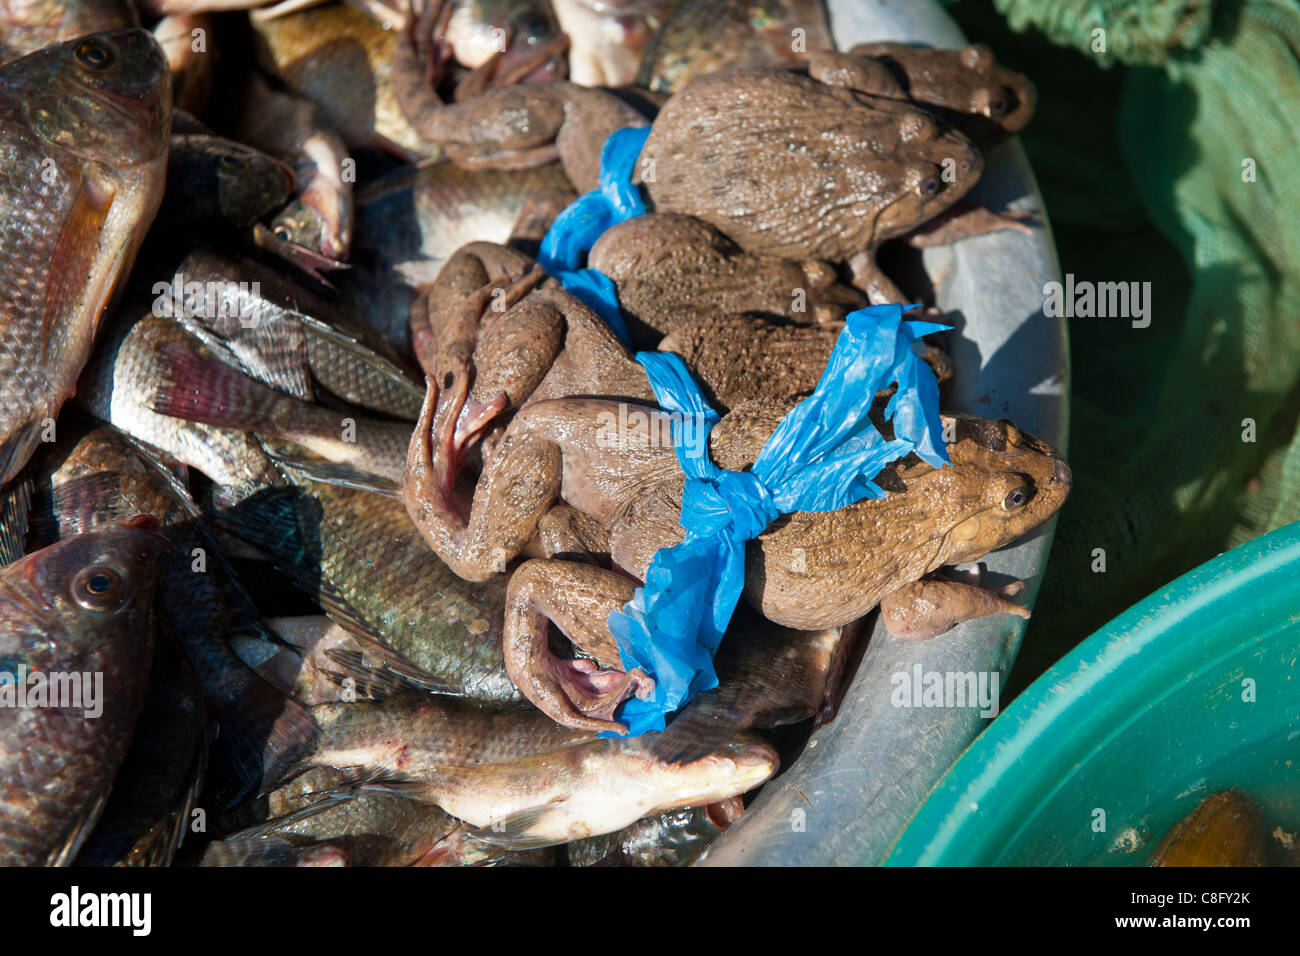 Edible live frogs for sale in Sapa market. North Vietnam - Stock Image